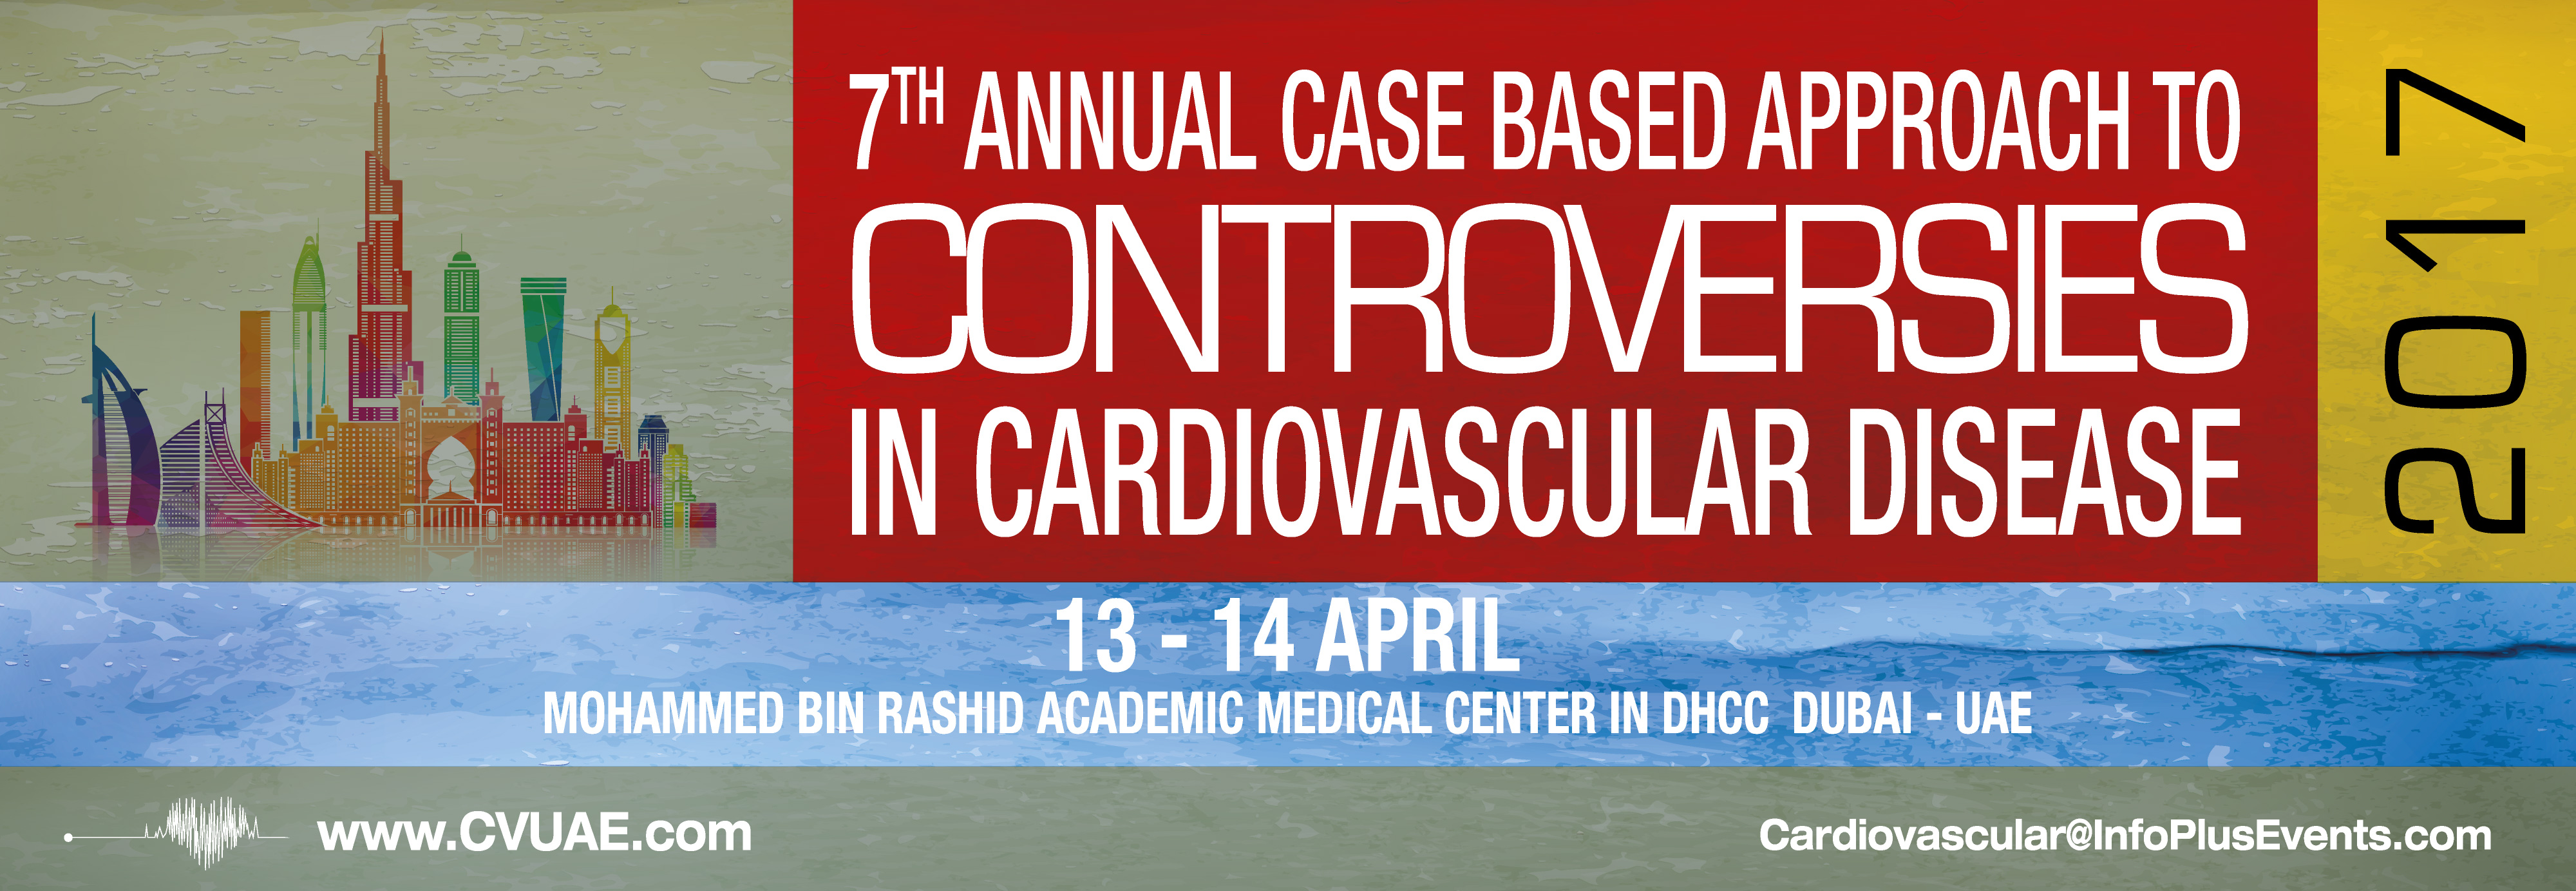 7th Annual Case Based Approach to Controversies in Cardiovascular Disease, 13th - 14th April, 2017, Dubai, United Arab Emirates